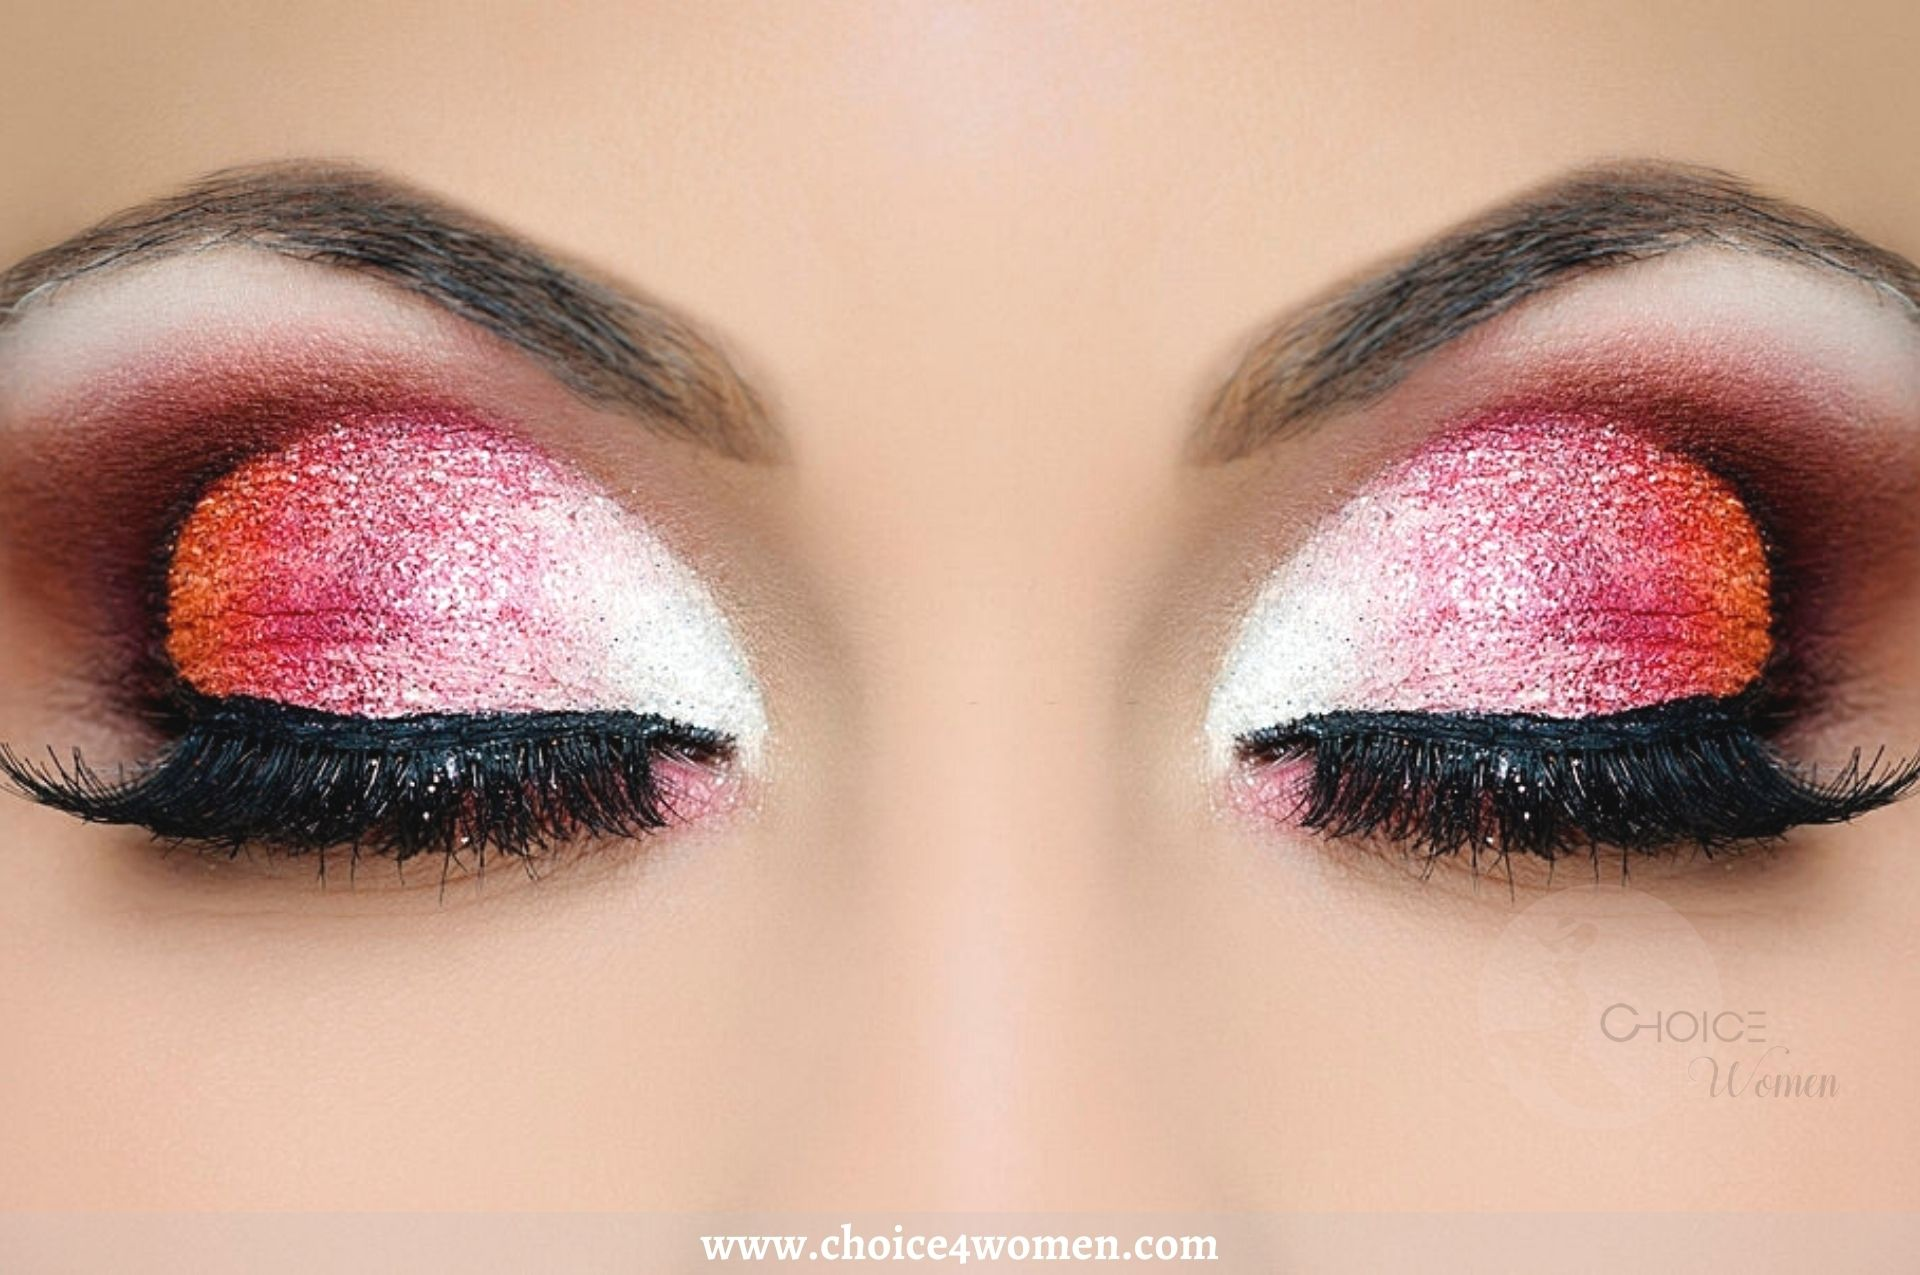 Amazing Ideas of Natural Glitter Makeup Eye Looks for Parties